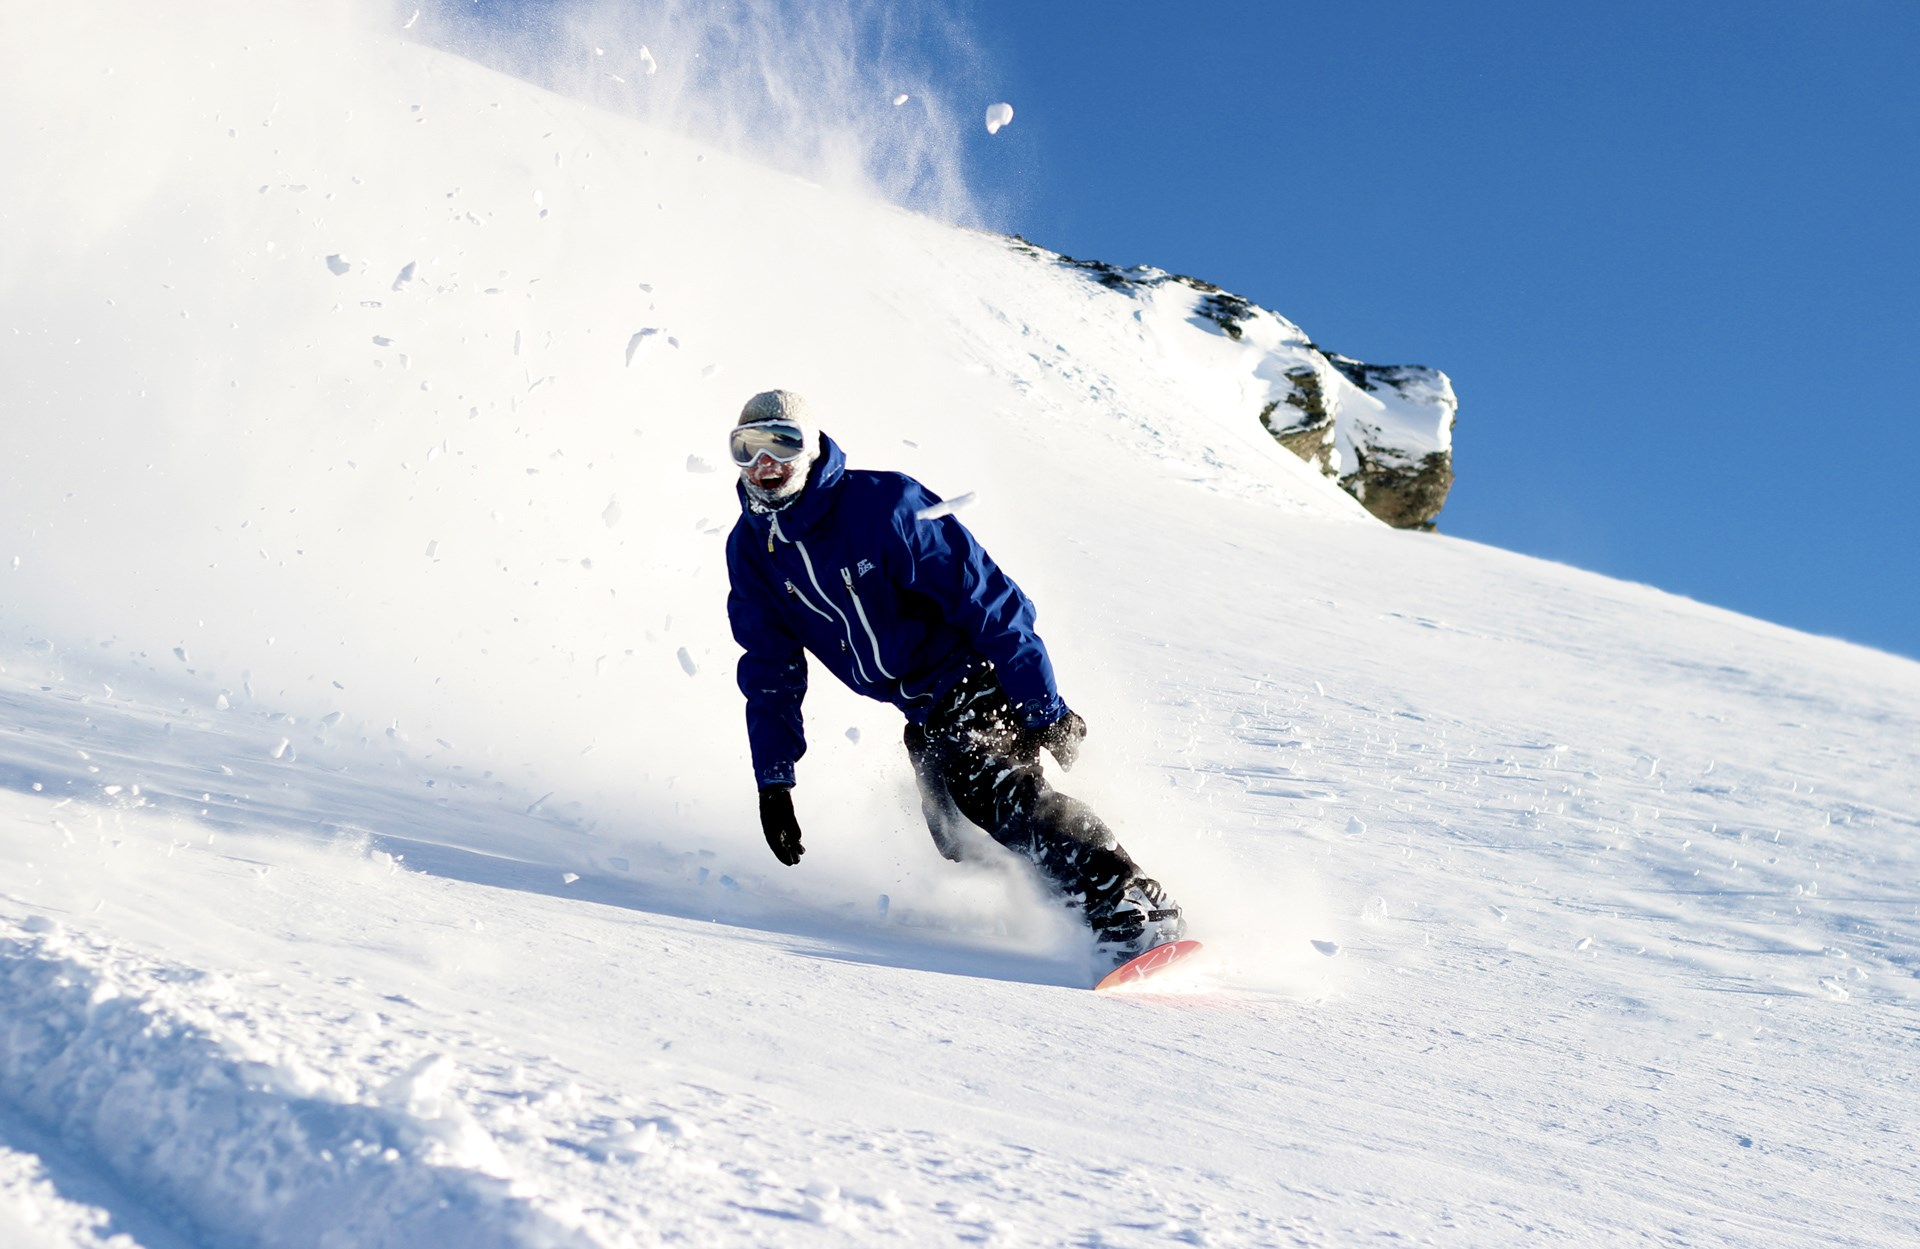 Snowboarder making powder turns